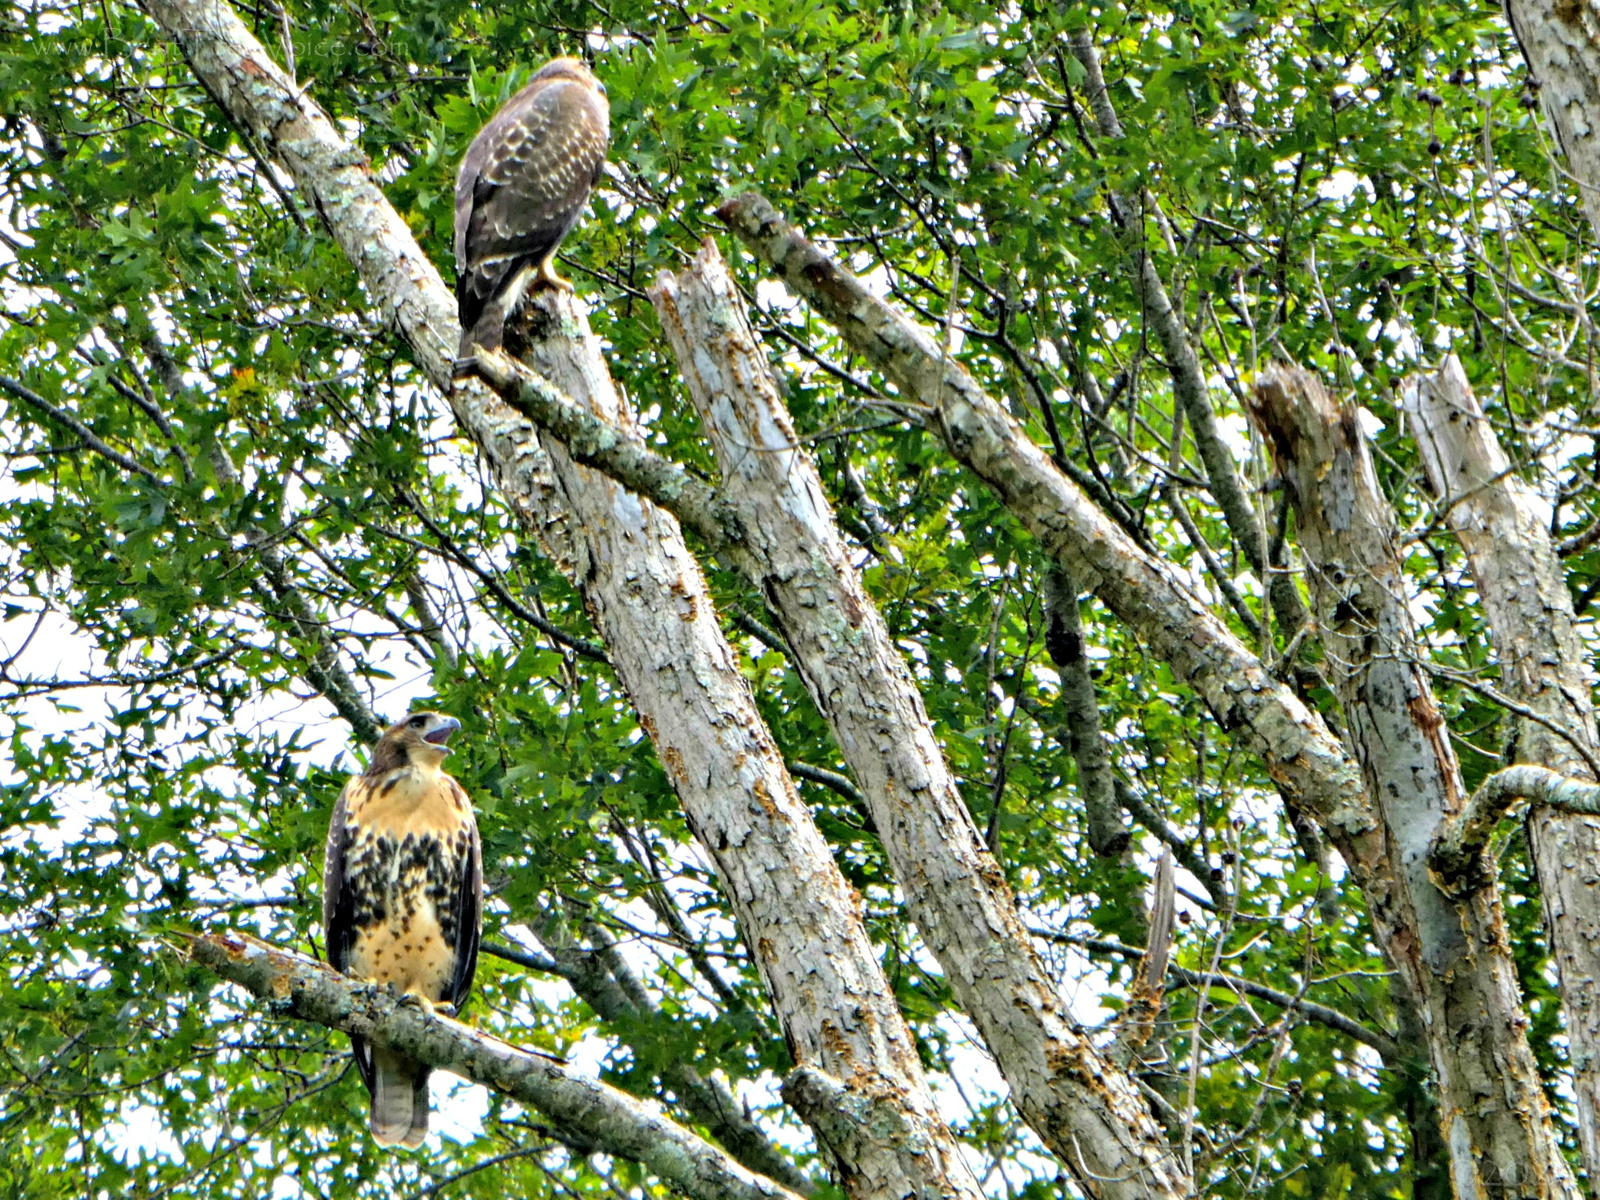 July 6, 2020 - Two hawks on Hole 9, Bent Tree Golf Course